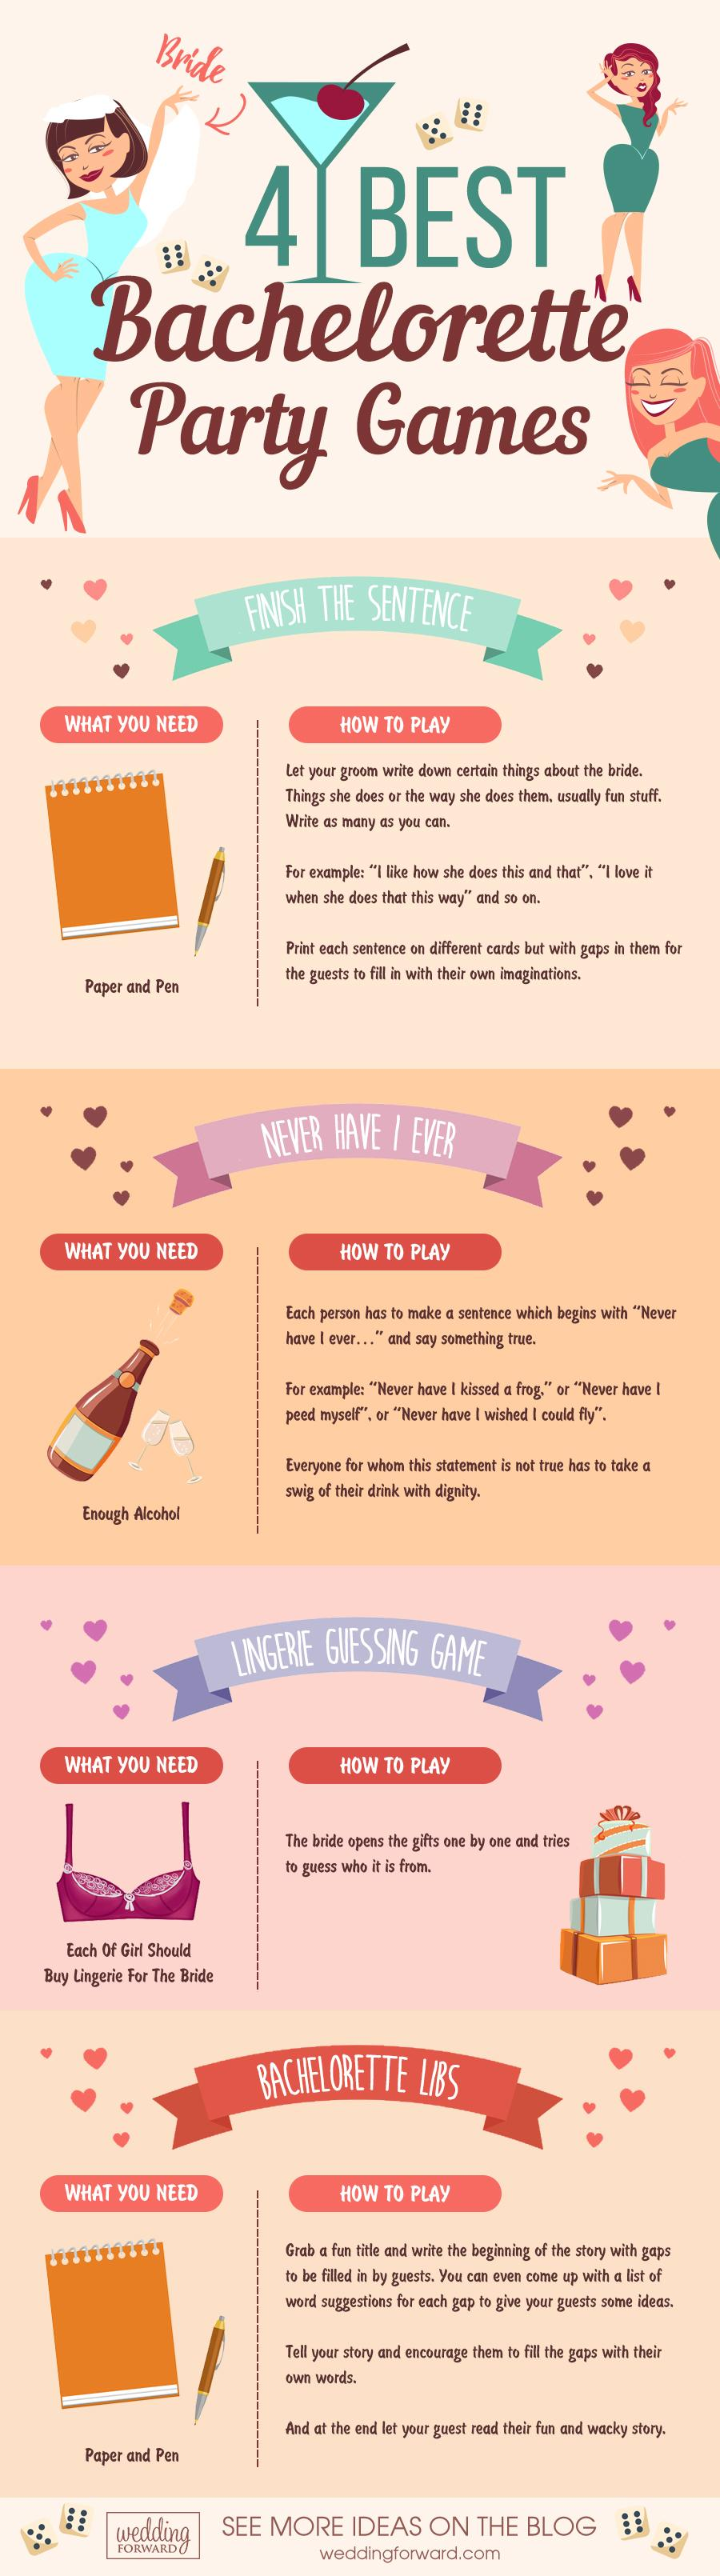 20 Fun Hilarious Bachelorette Party Games In 2019 That